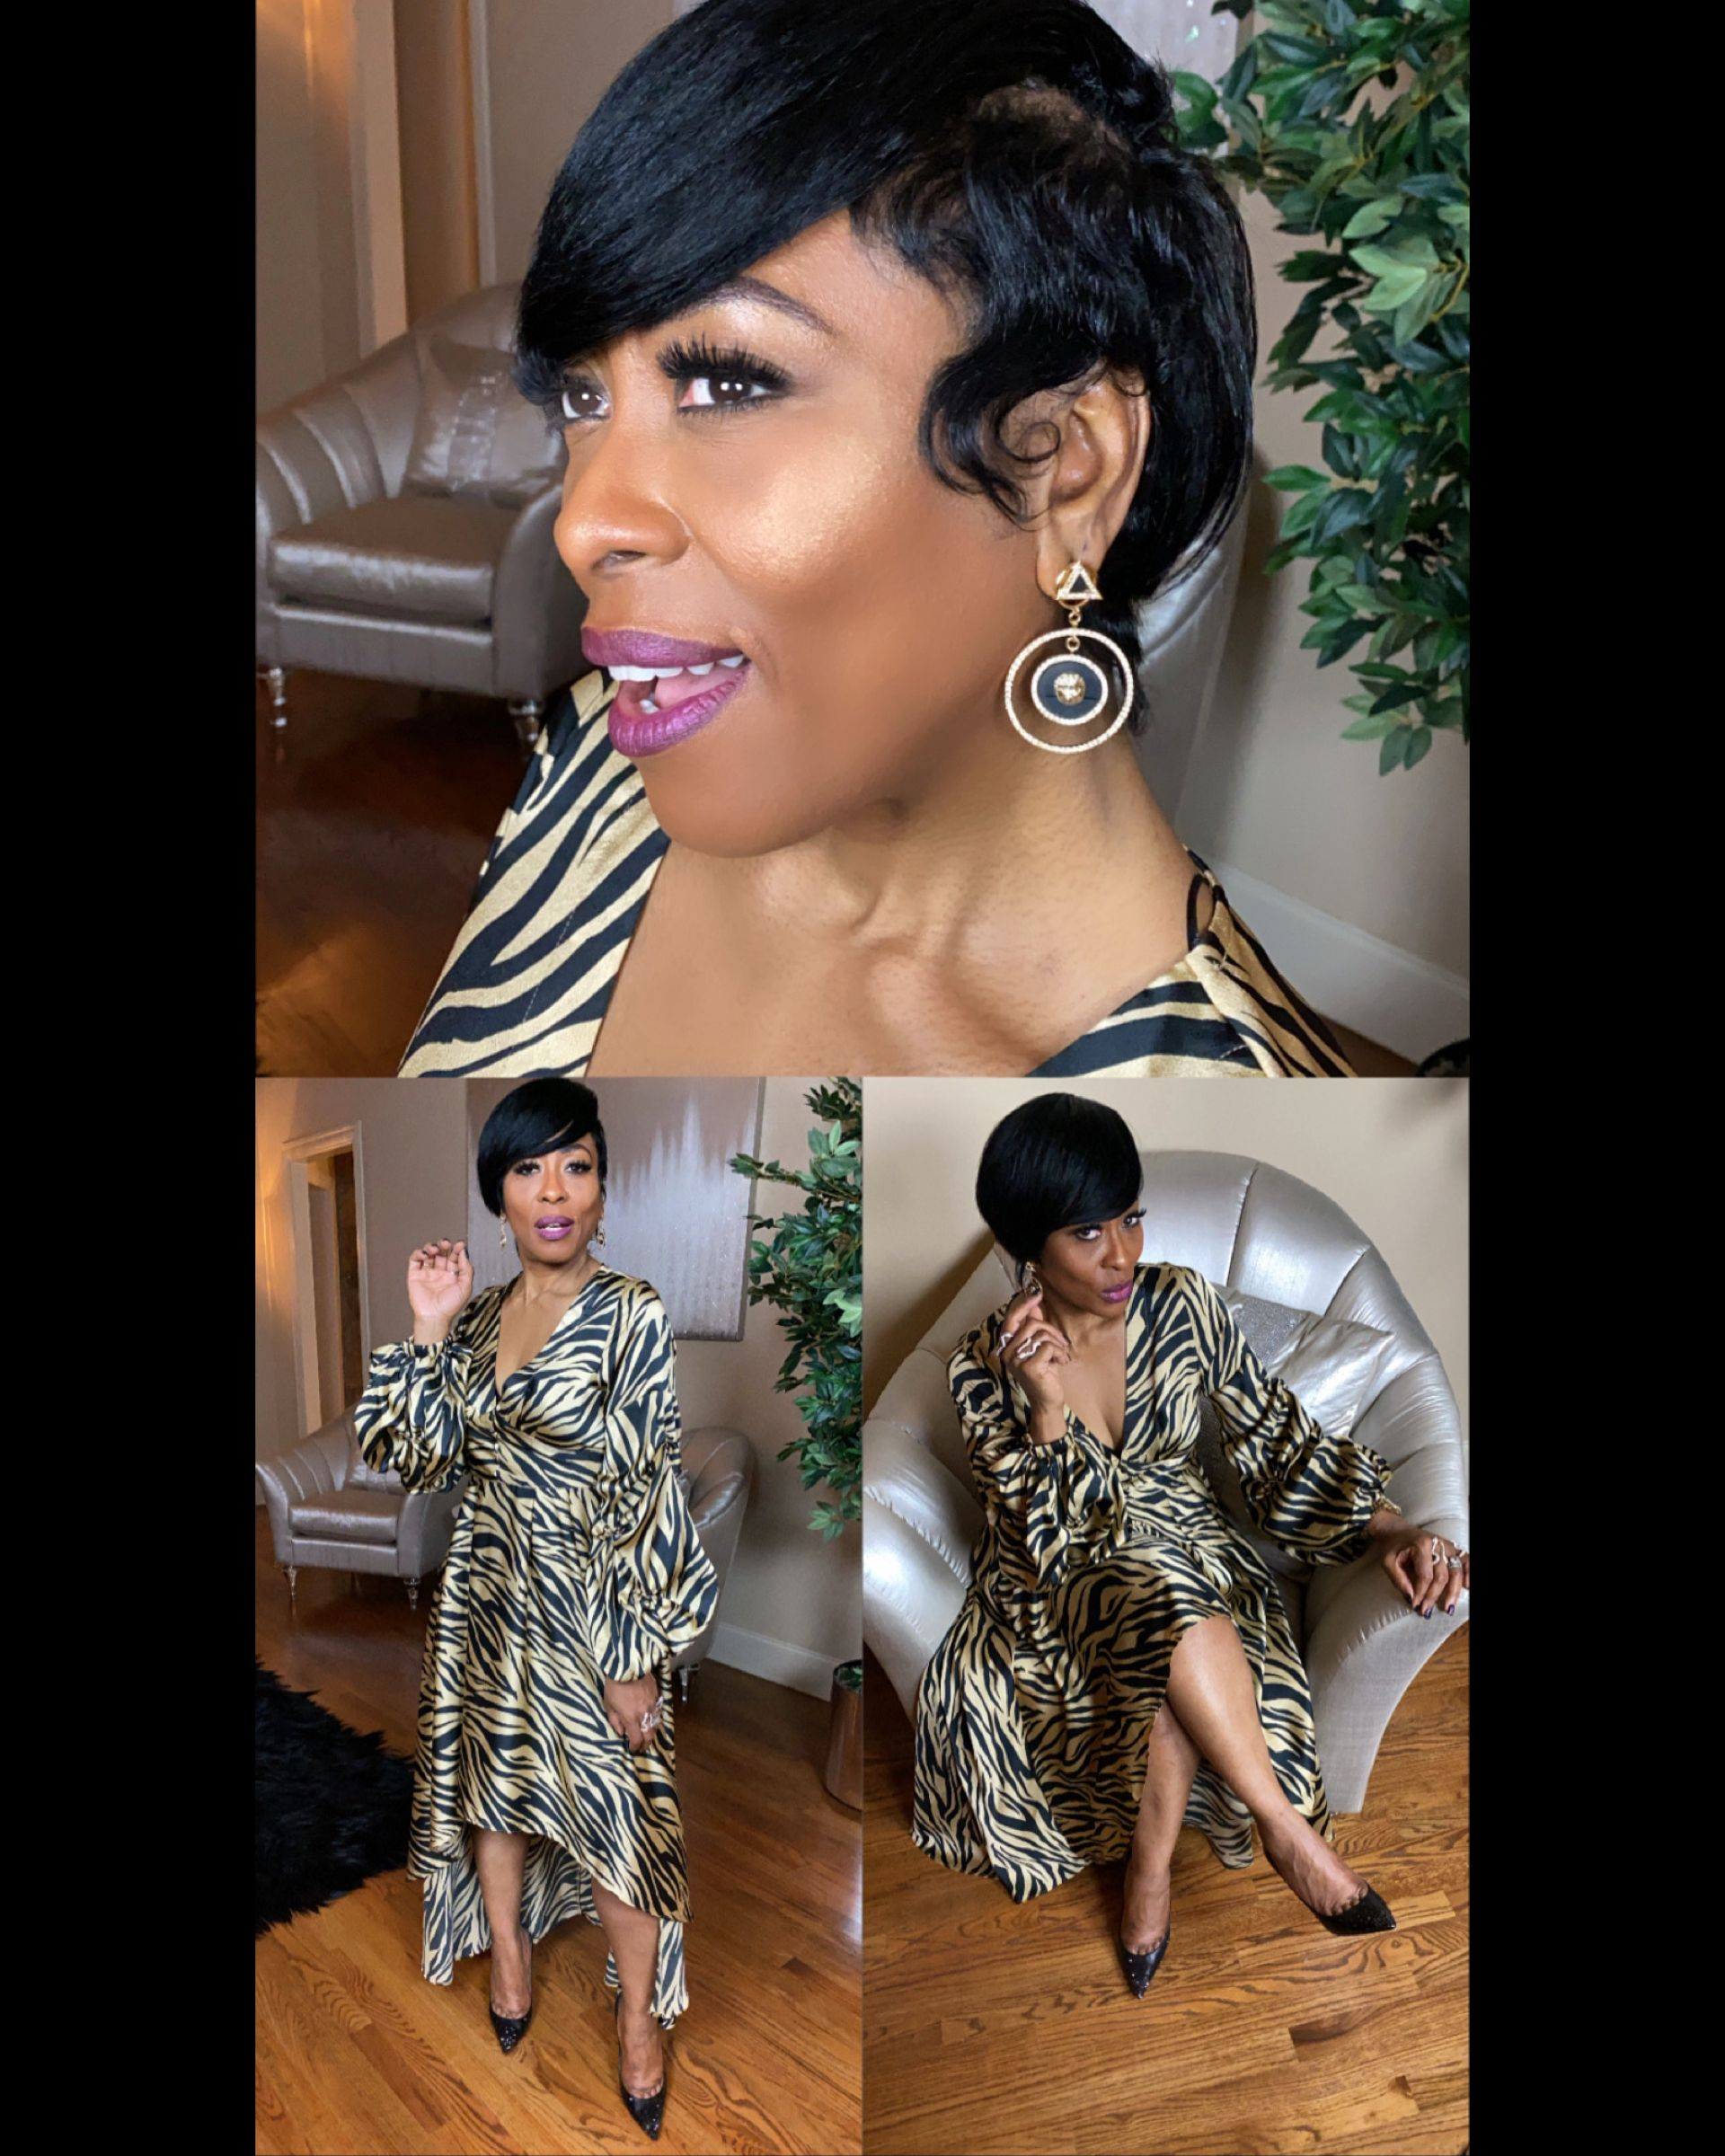 Boss Out All 2020 With Grittysoul 18k Gold Quiet Storm Mini Vinyl Record Earrings Golden Zebra Hi Low Dress In 2020 Hi Low Dresses Vinyl Records Vinyl